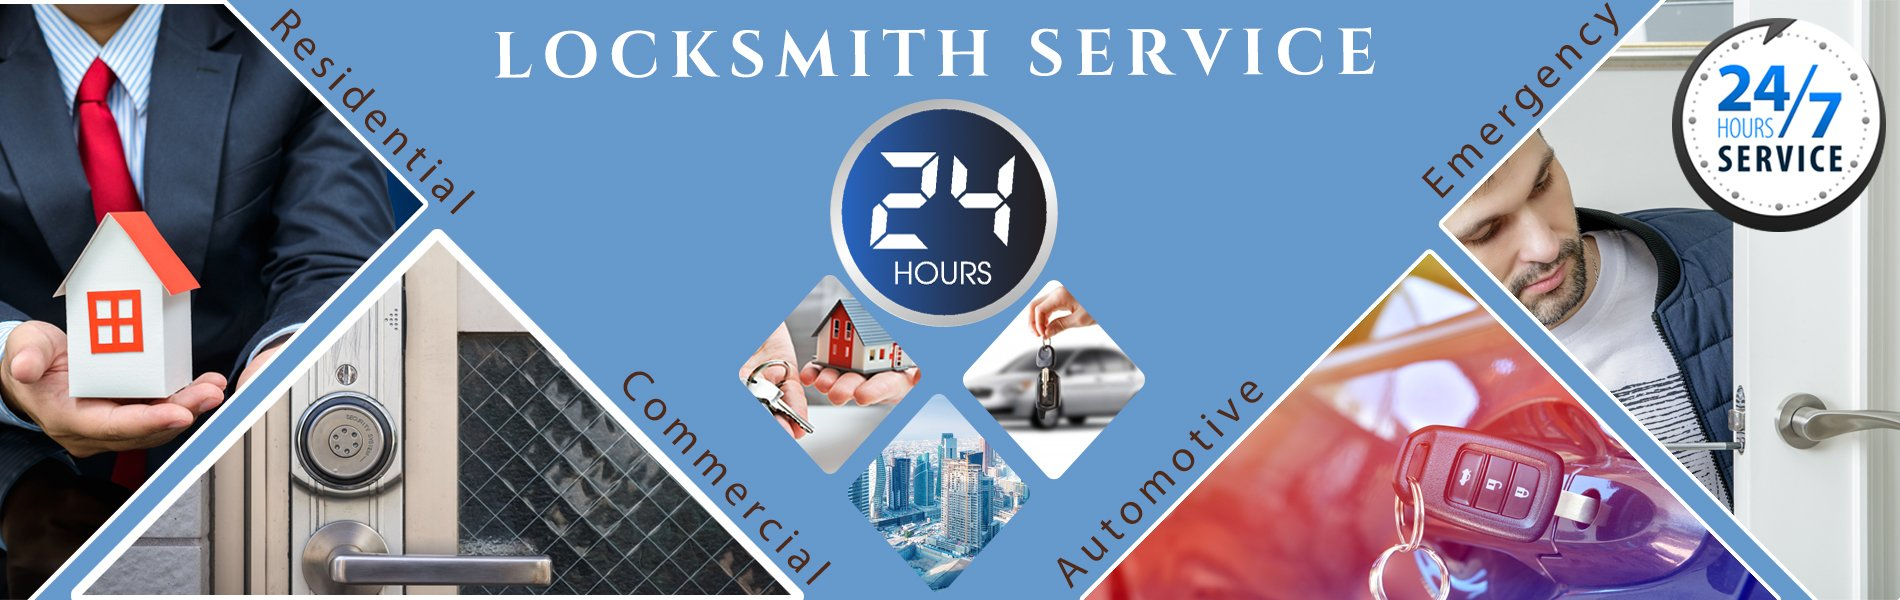 State Locksmith Services Astatula, FL 352-261-6713